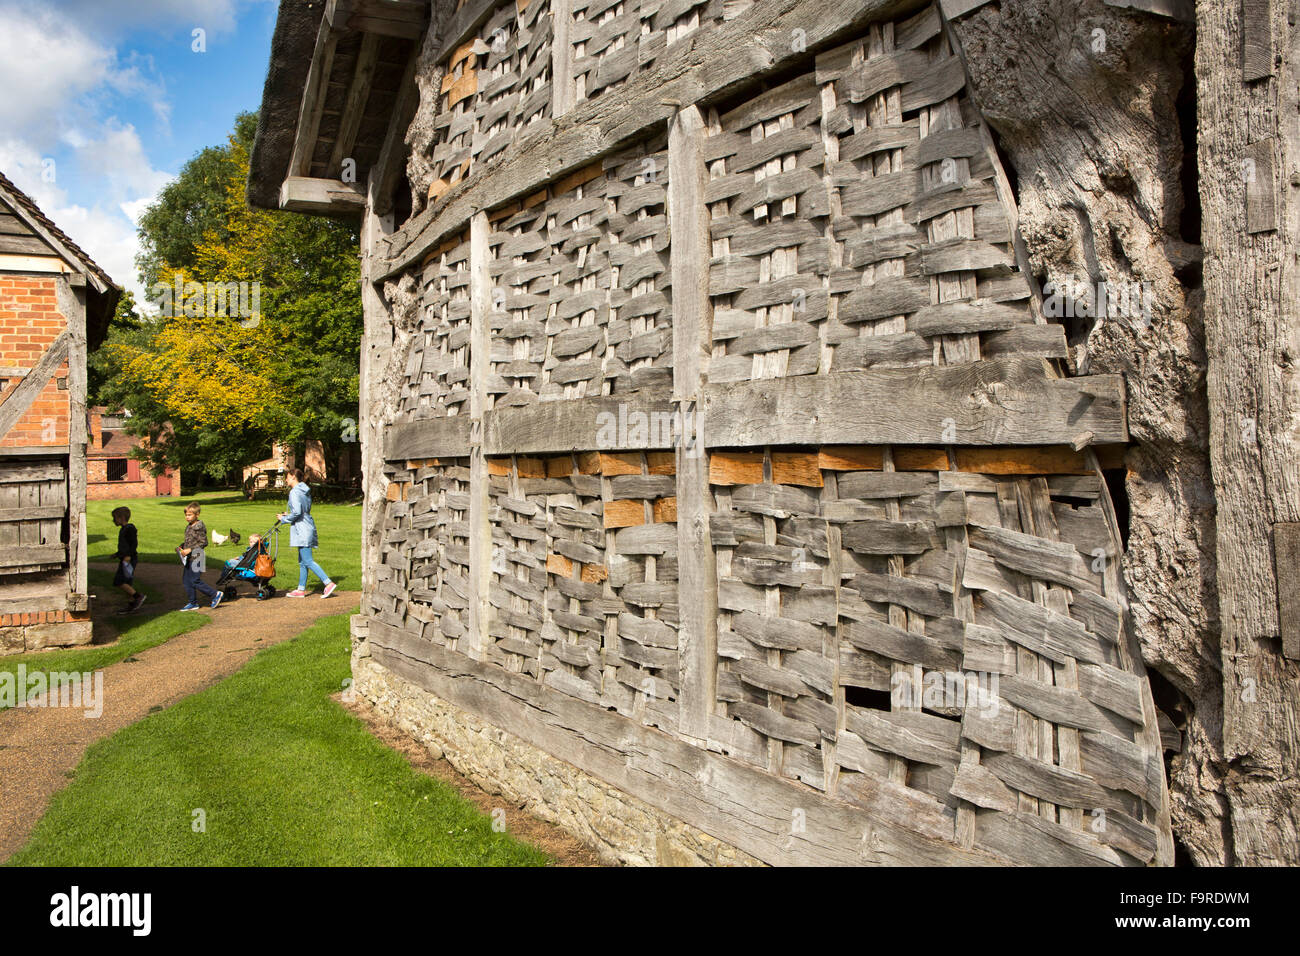 UK, England, Worcestershire, Bromsgrove, Avoncroft Museum, Thatched Threshing Barn, and timber framed stable - Stock Image